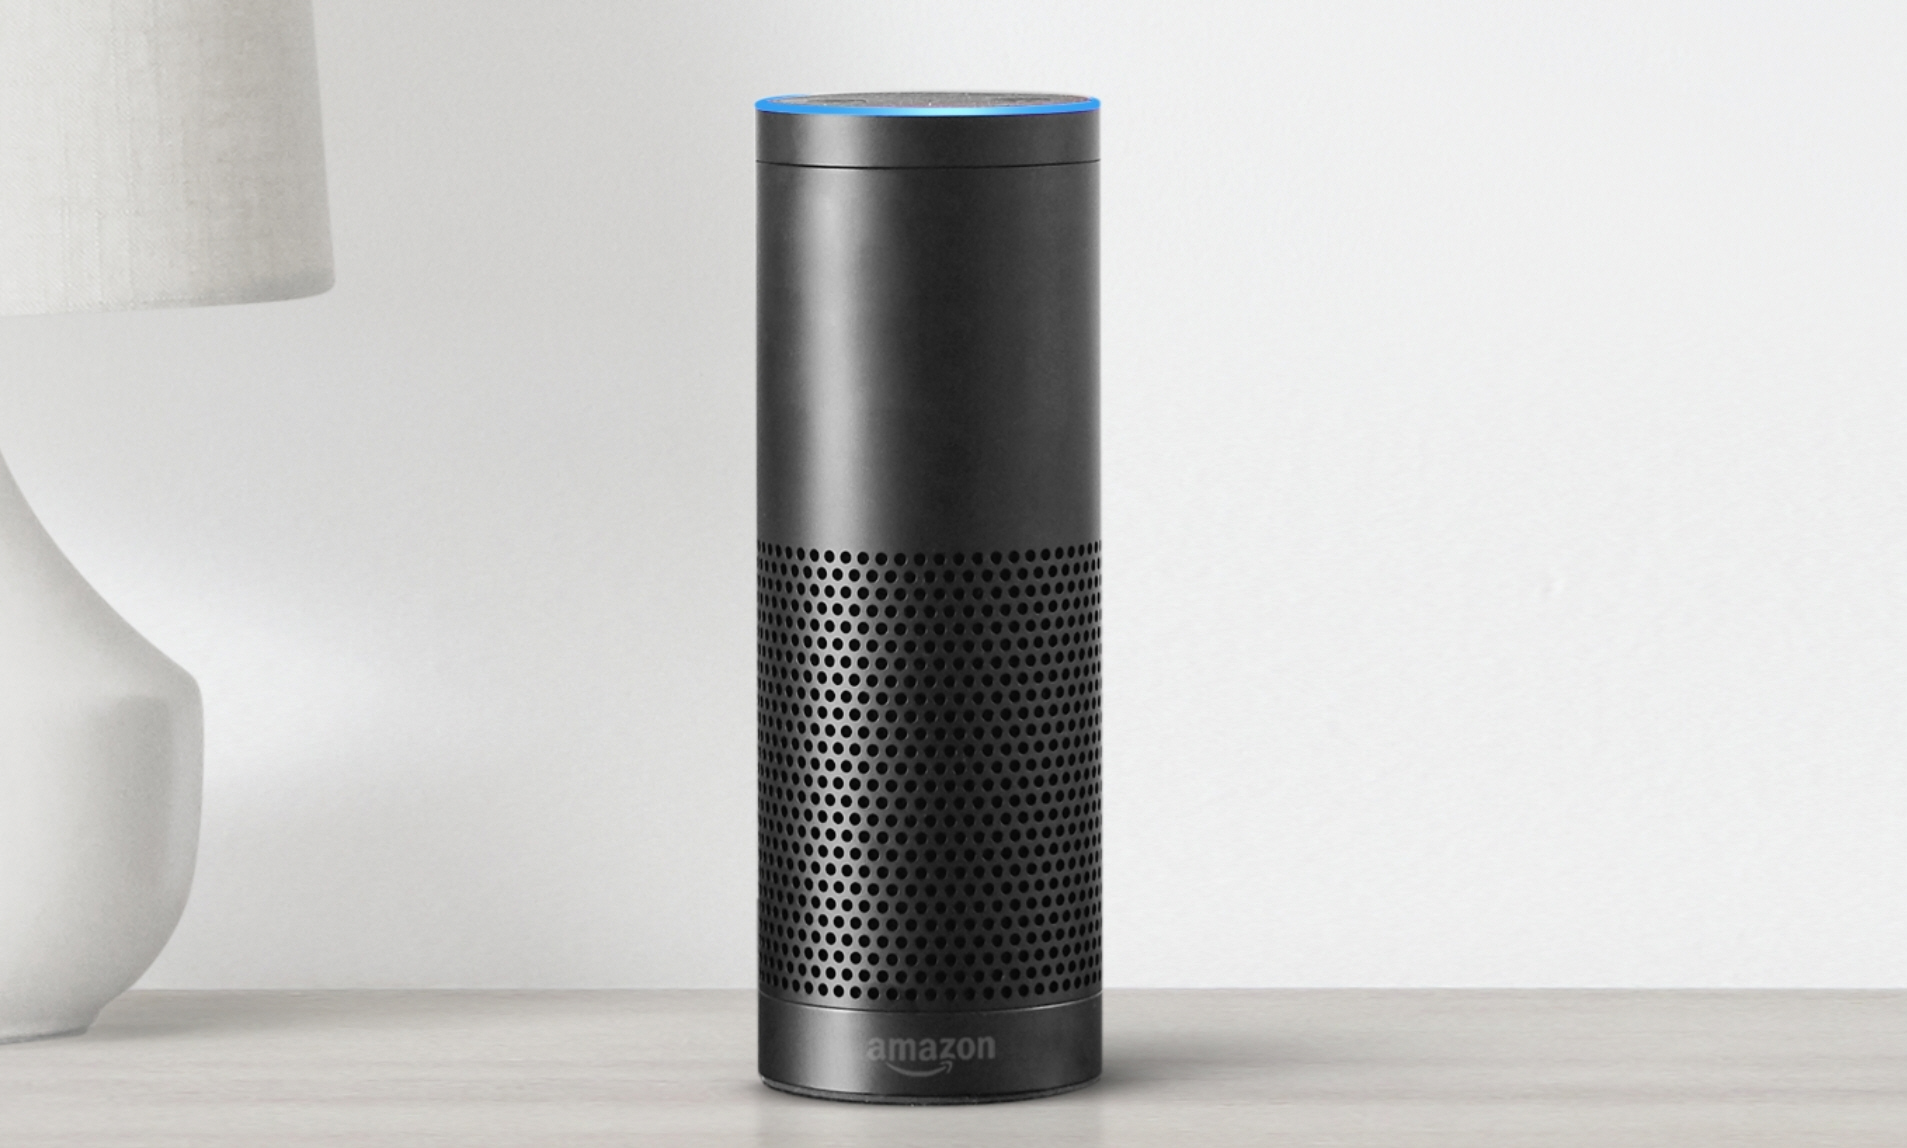 Amazon 'Alexa loses her voice'